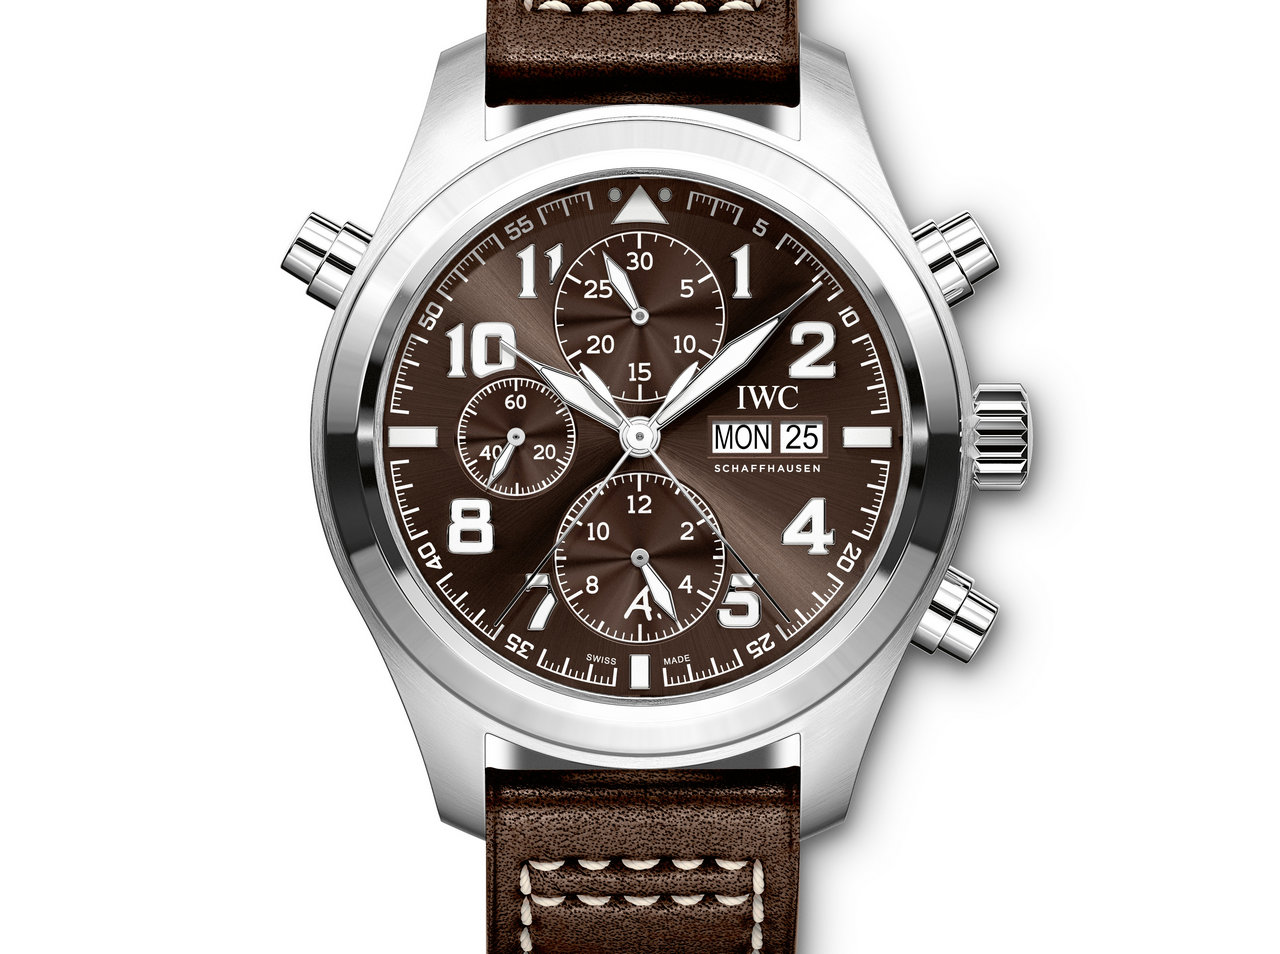 SIHH-2016-IWC-Pilot-Watch-Double-Chronograph-Edition-Antoine-de-Saint-Exupéry-IW371808-0-100_11